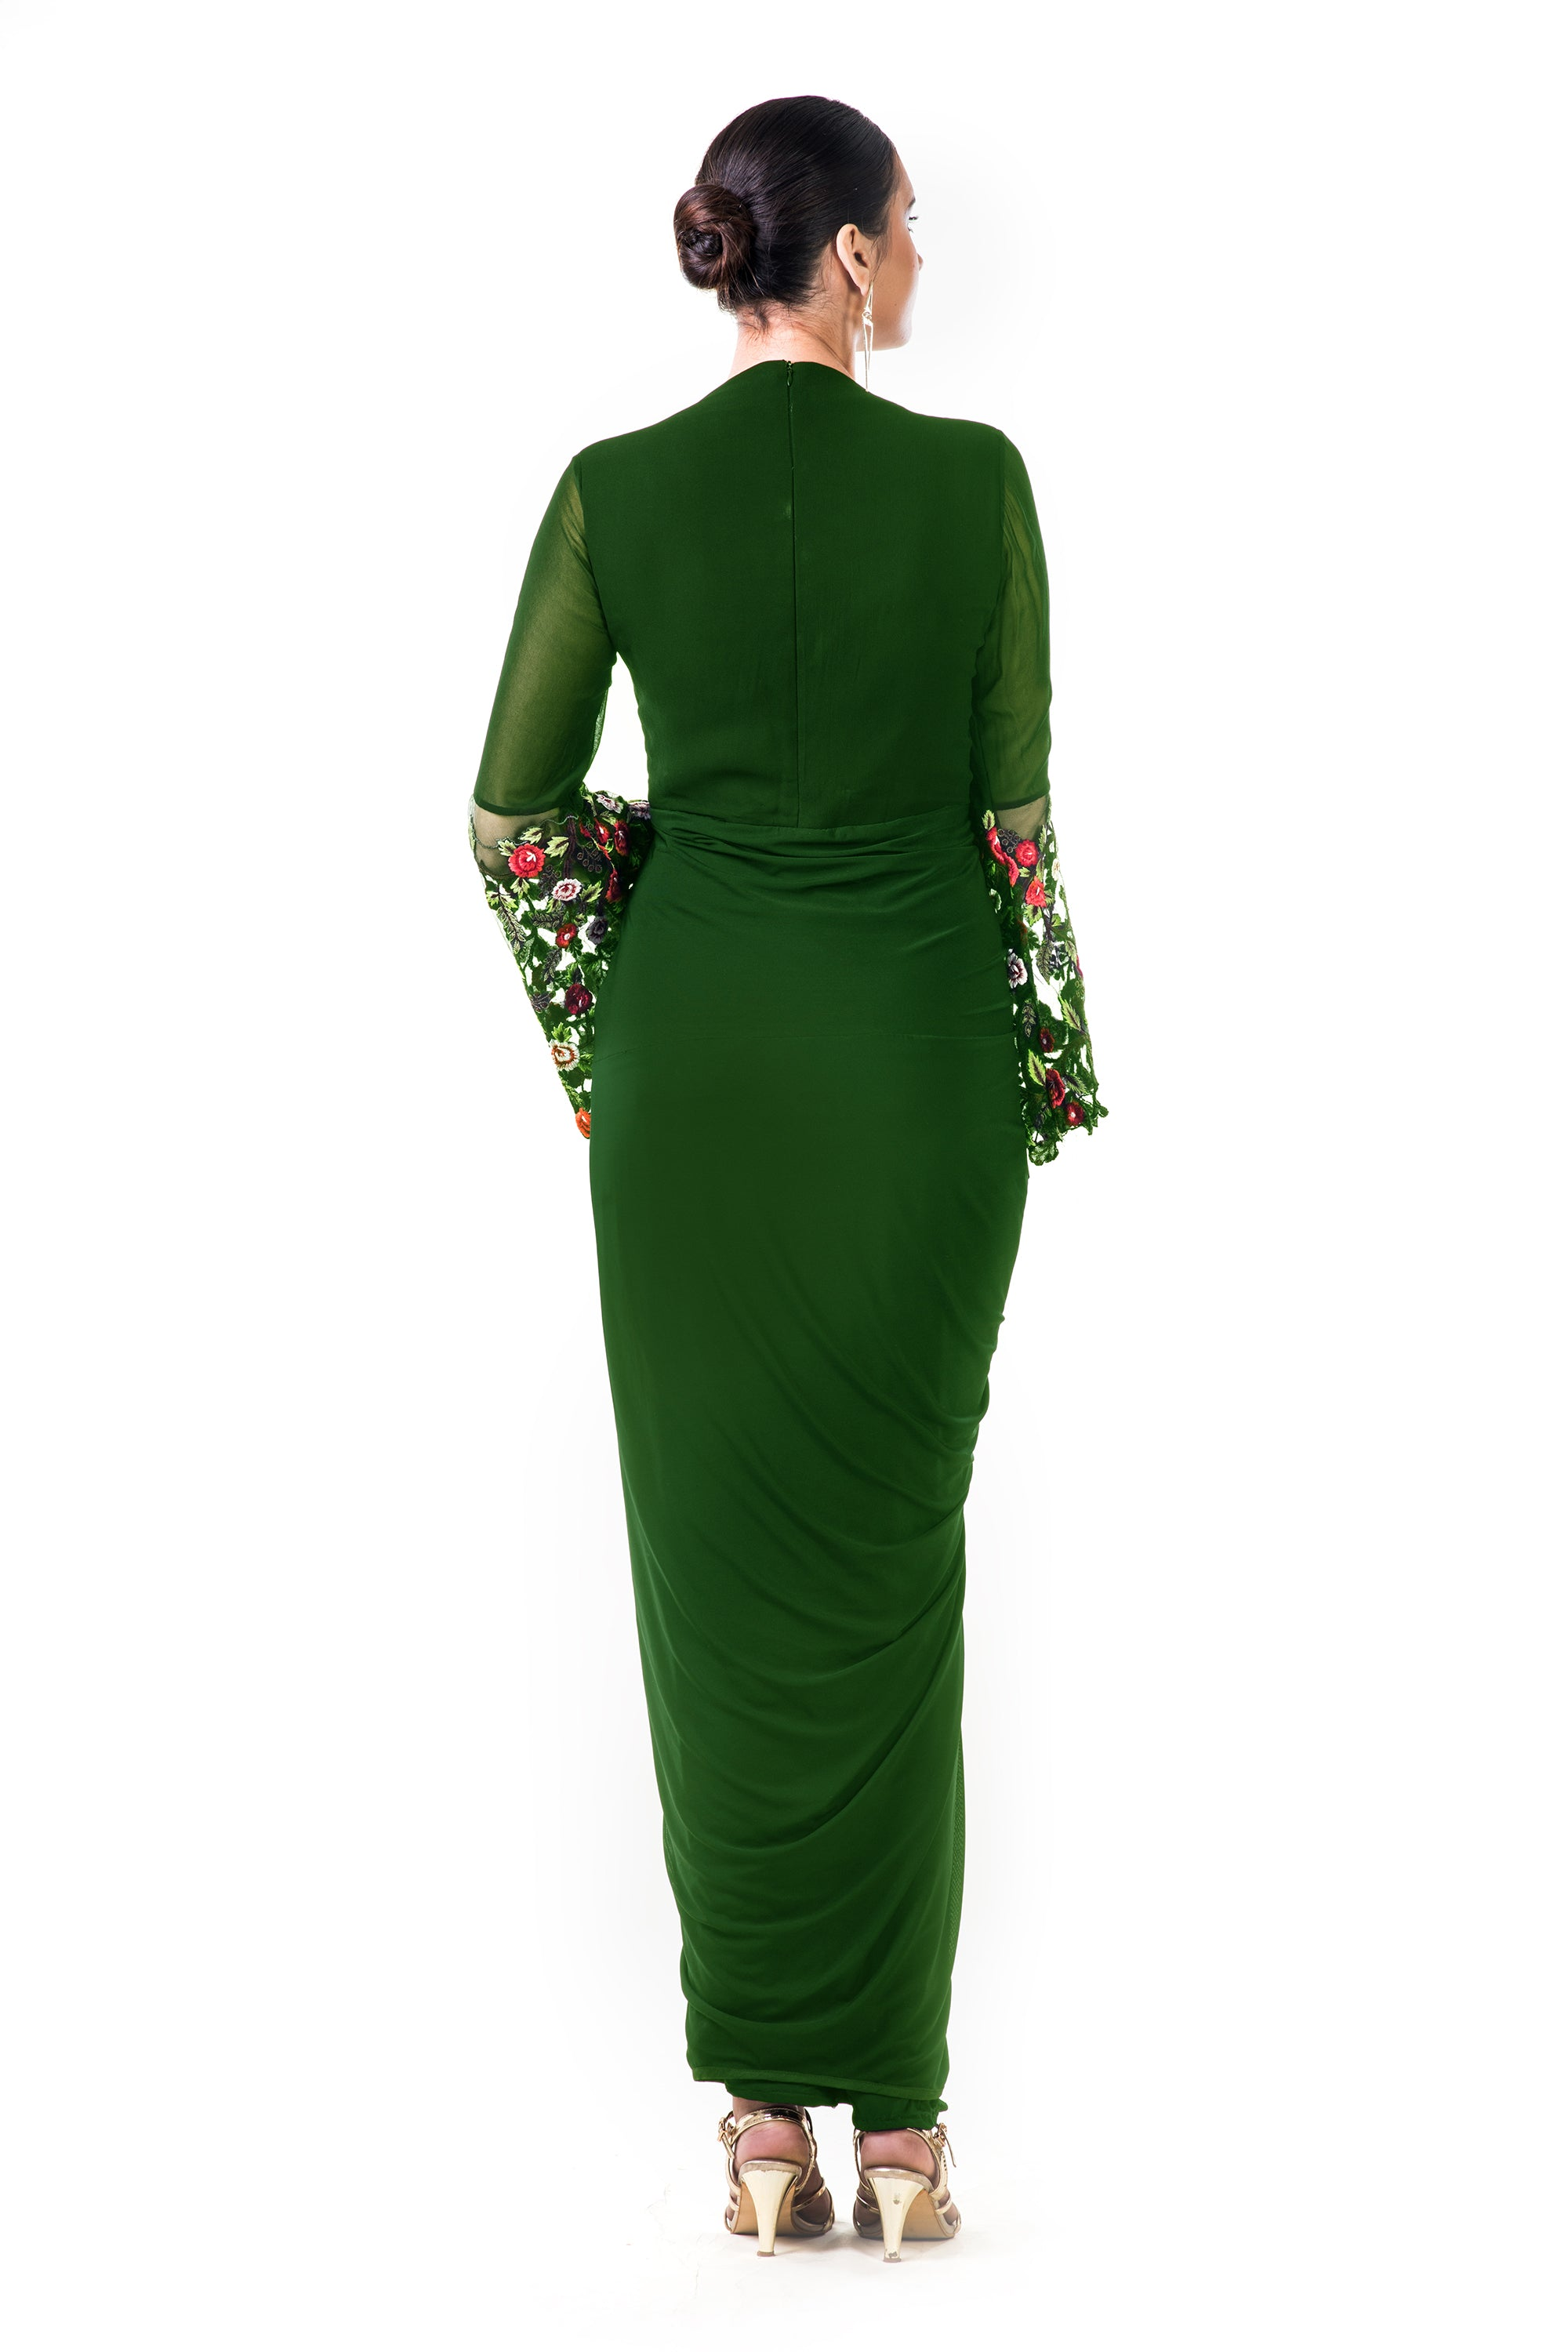 Green Embroidered Bell Sleeves Draped Dress Black